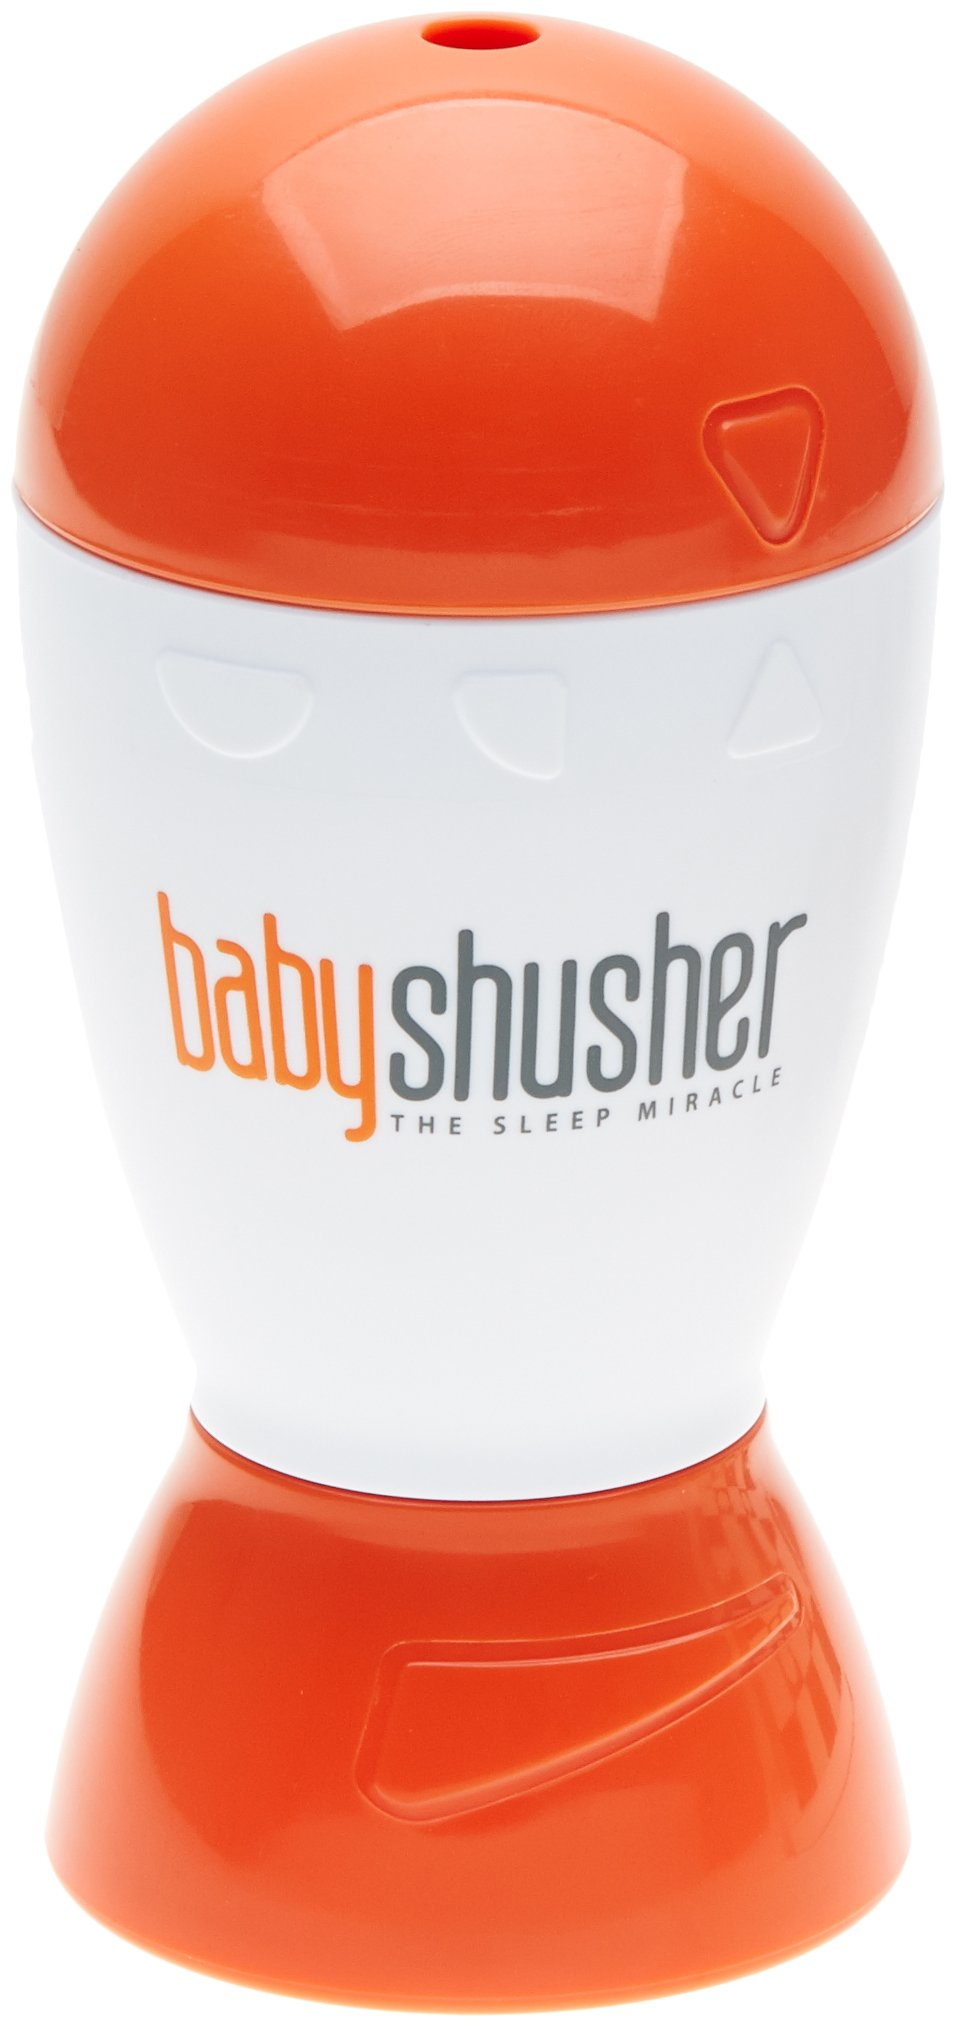 Baby Shusher The Soothing Sleep Miracle Collection Pack Baby Safety & Health Baby